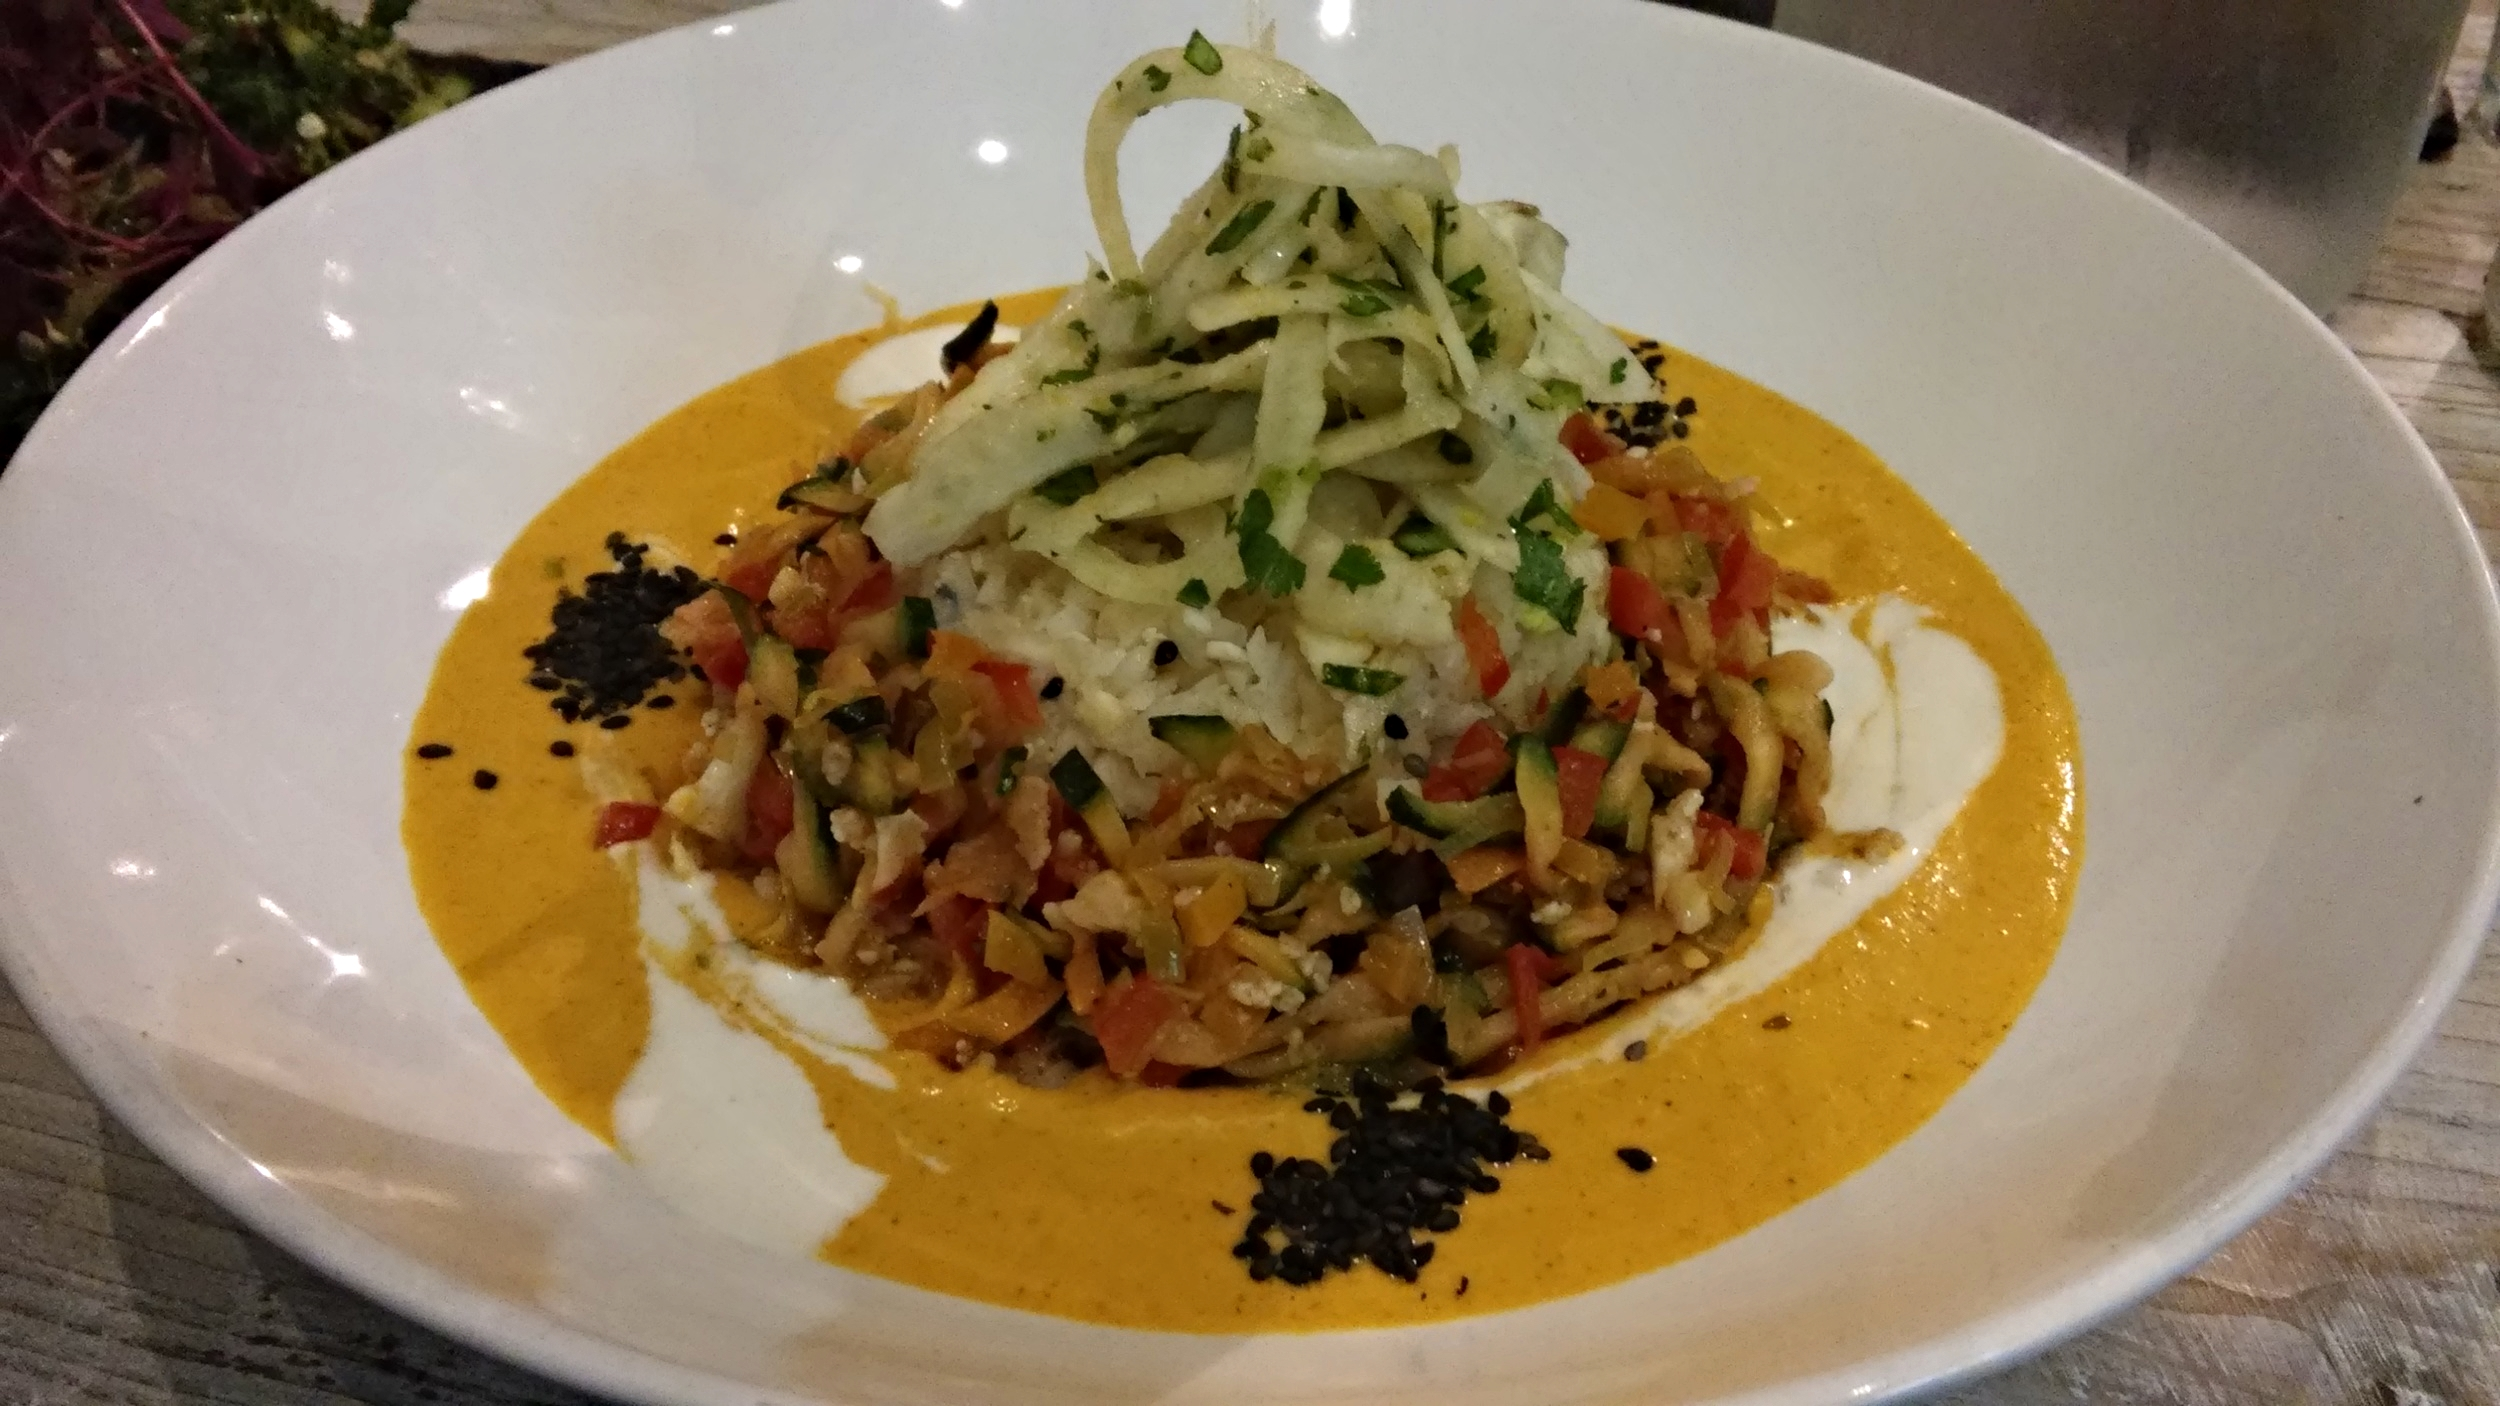 Thai Coconut Curry - Cauliflower, courgette, red pepper & leek marinated in a sweet chilli sauce, served with a coconut currym kohlrabi rice and pickled fennel